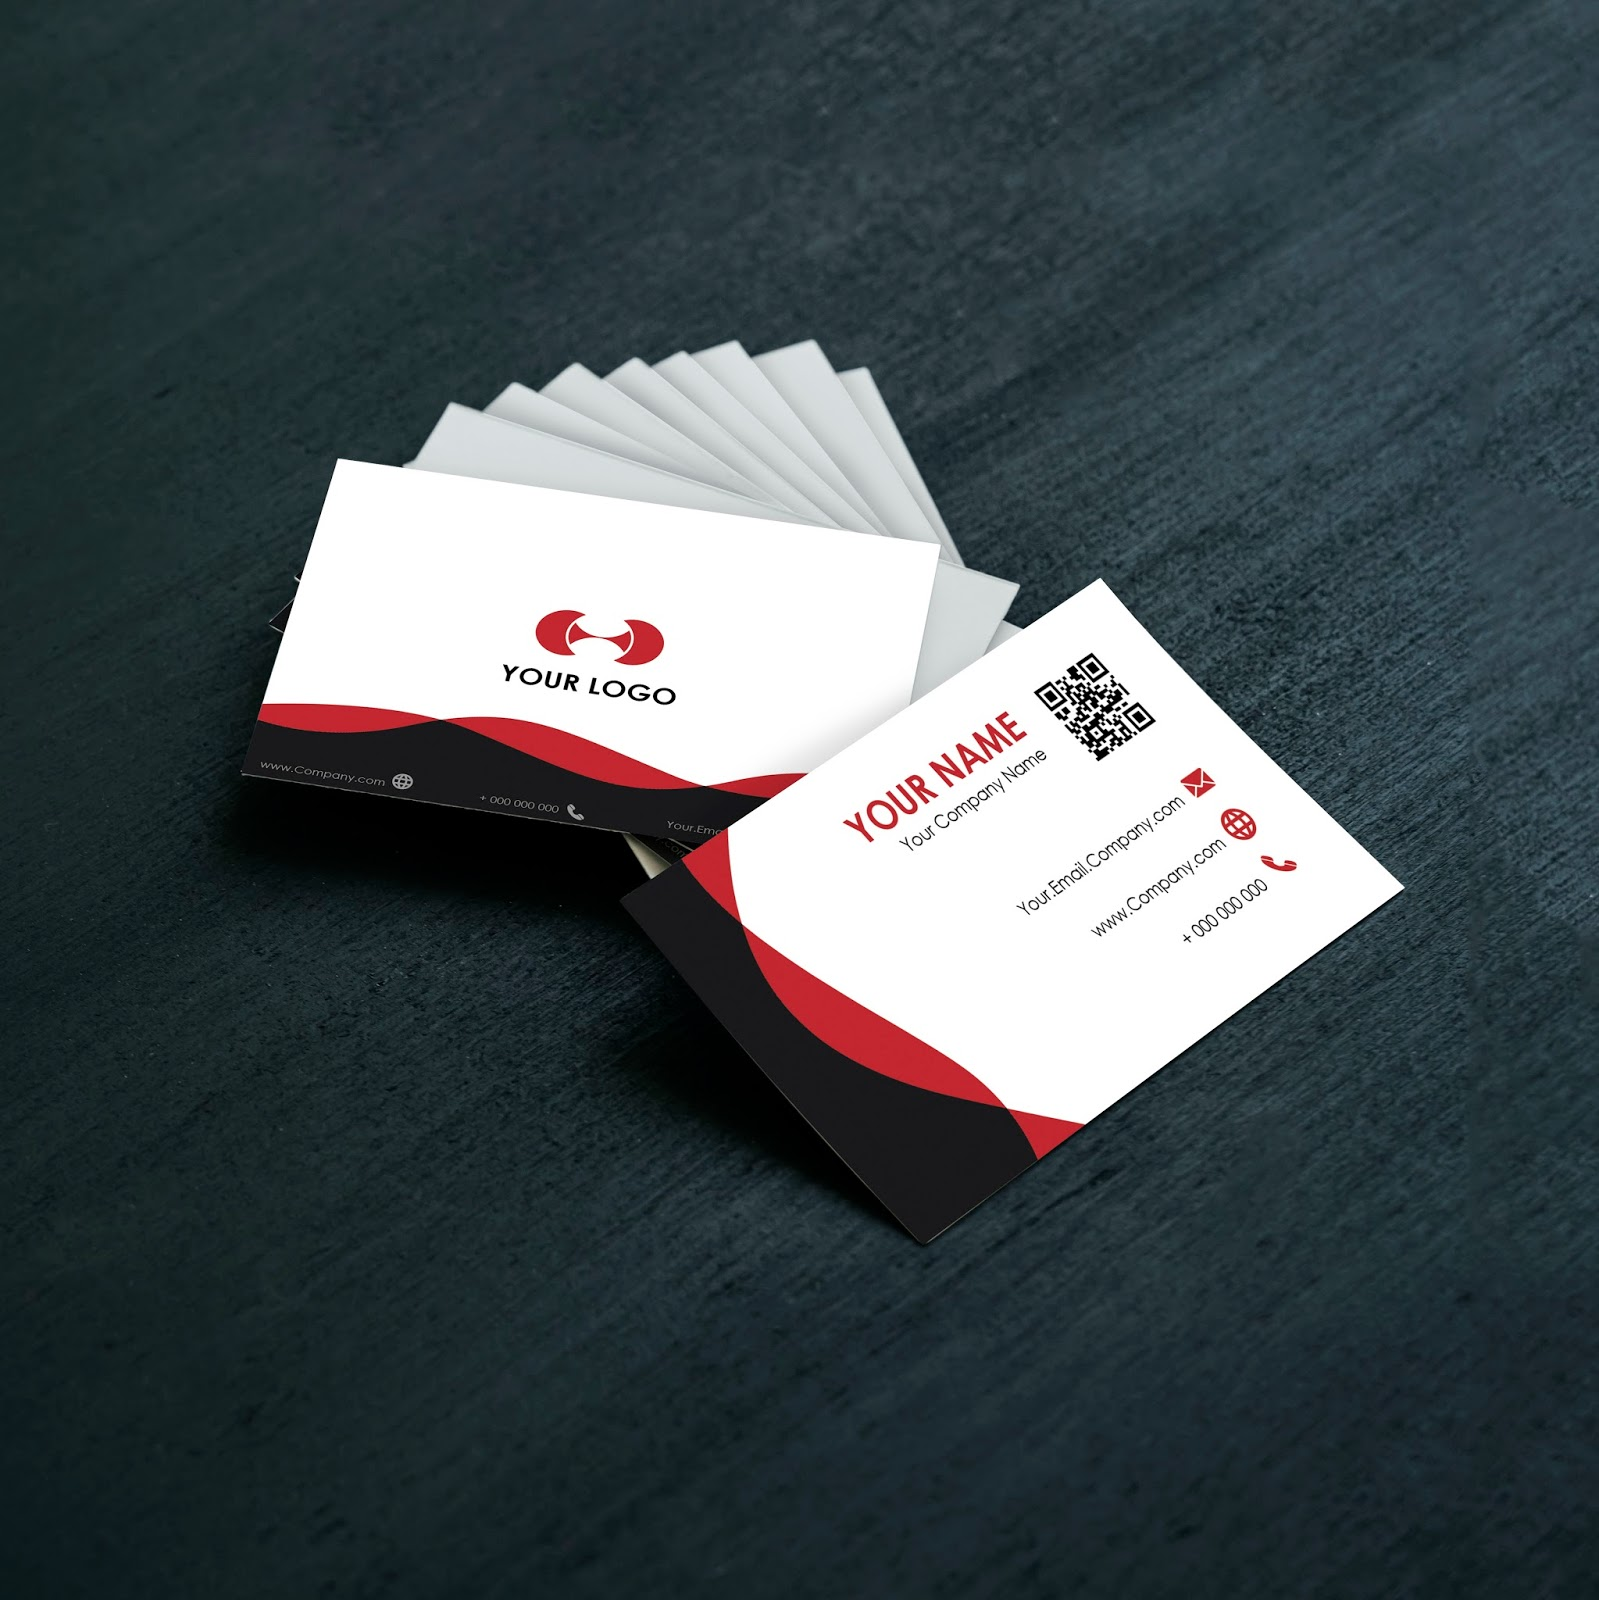 How To Create A Simple Business Cards With Adobe Illustrator ...